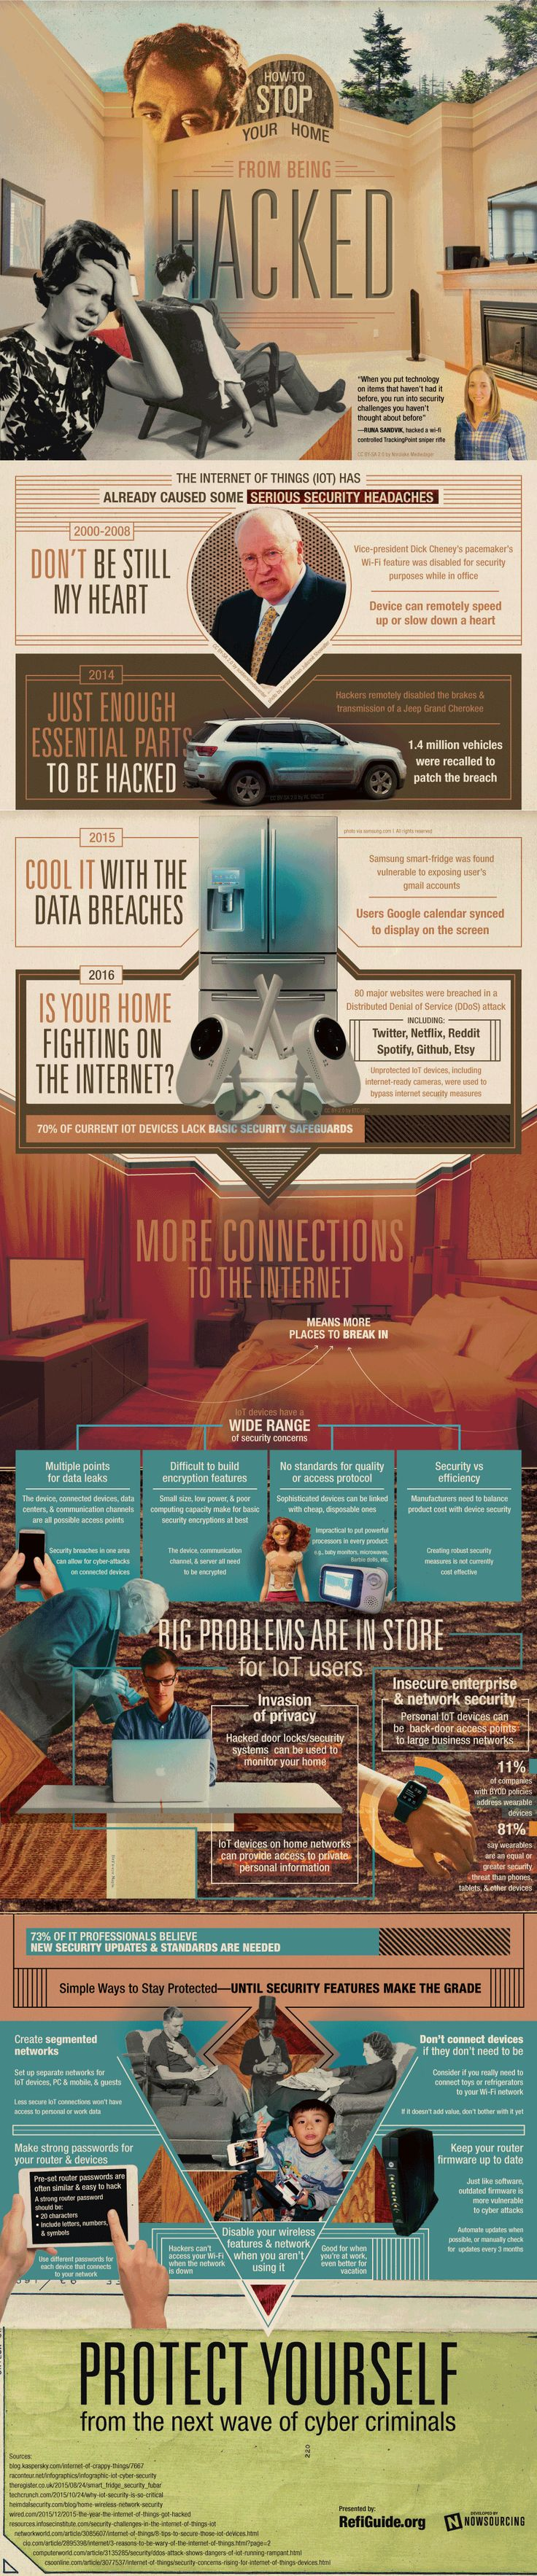 How To Stop Your Home From Being Hacked #Infographic #HowTo